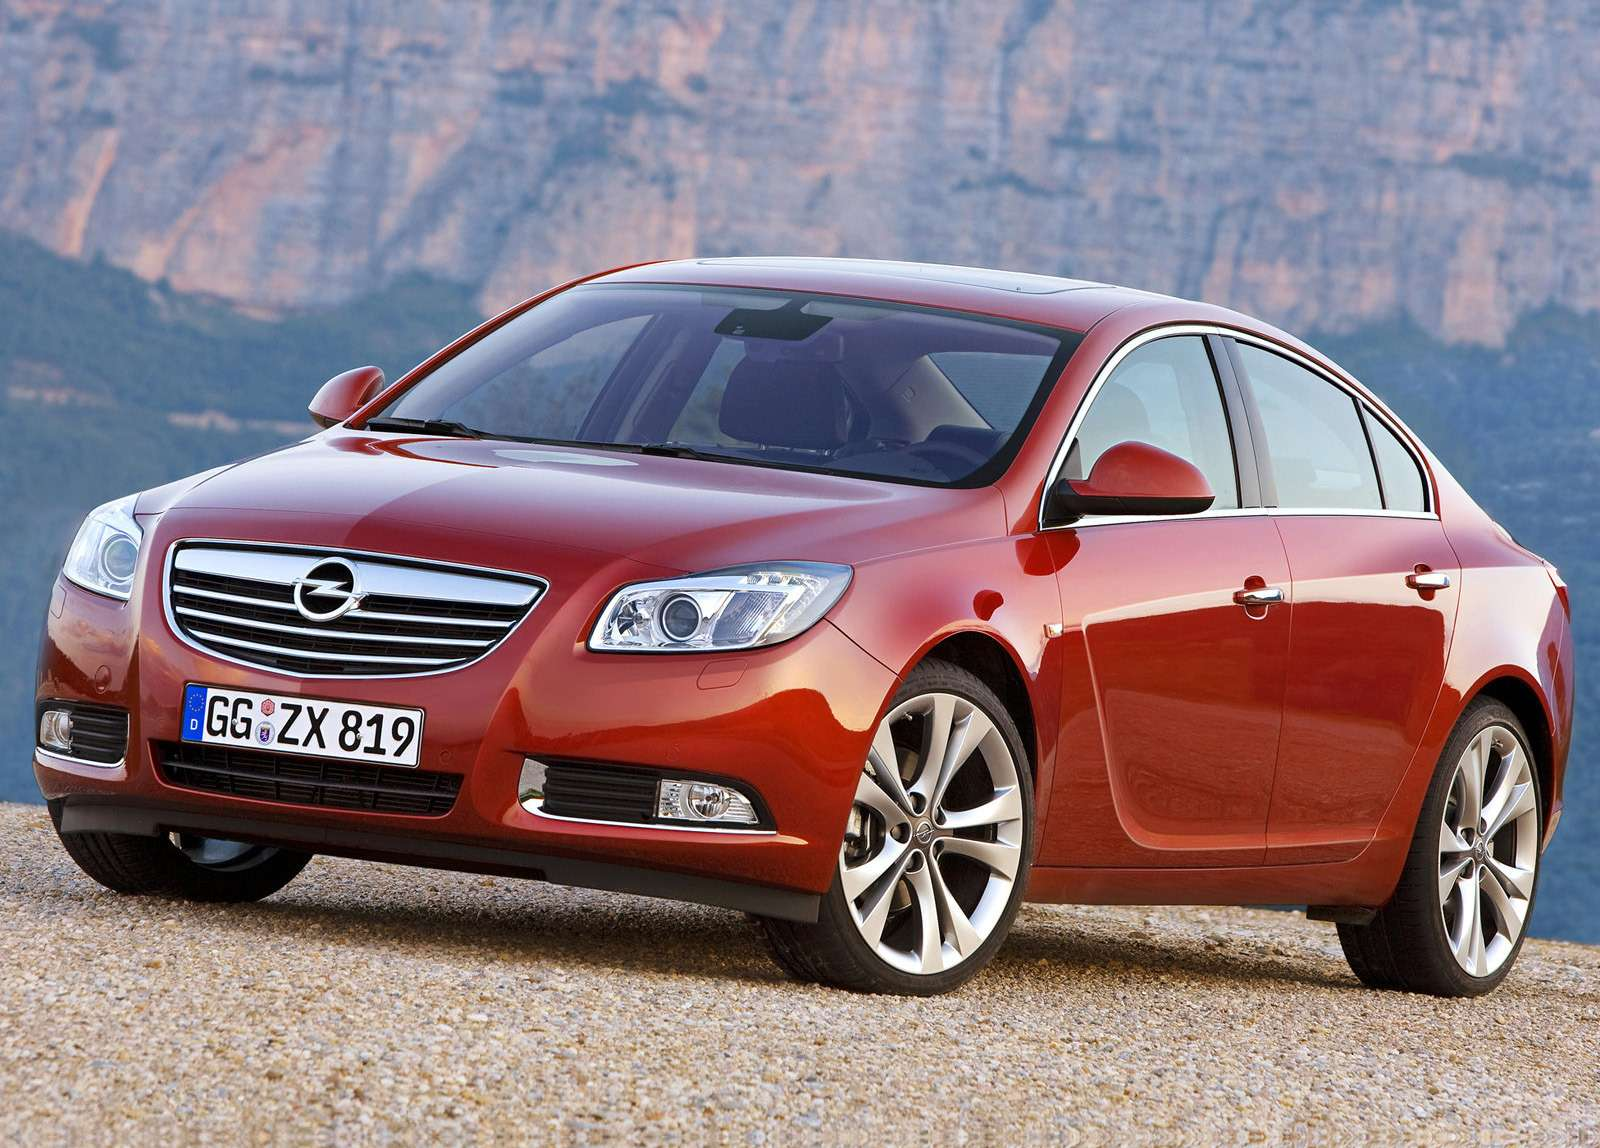 Opel-Insignia_2009_1600x1200_wallpaper_04